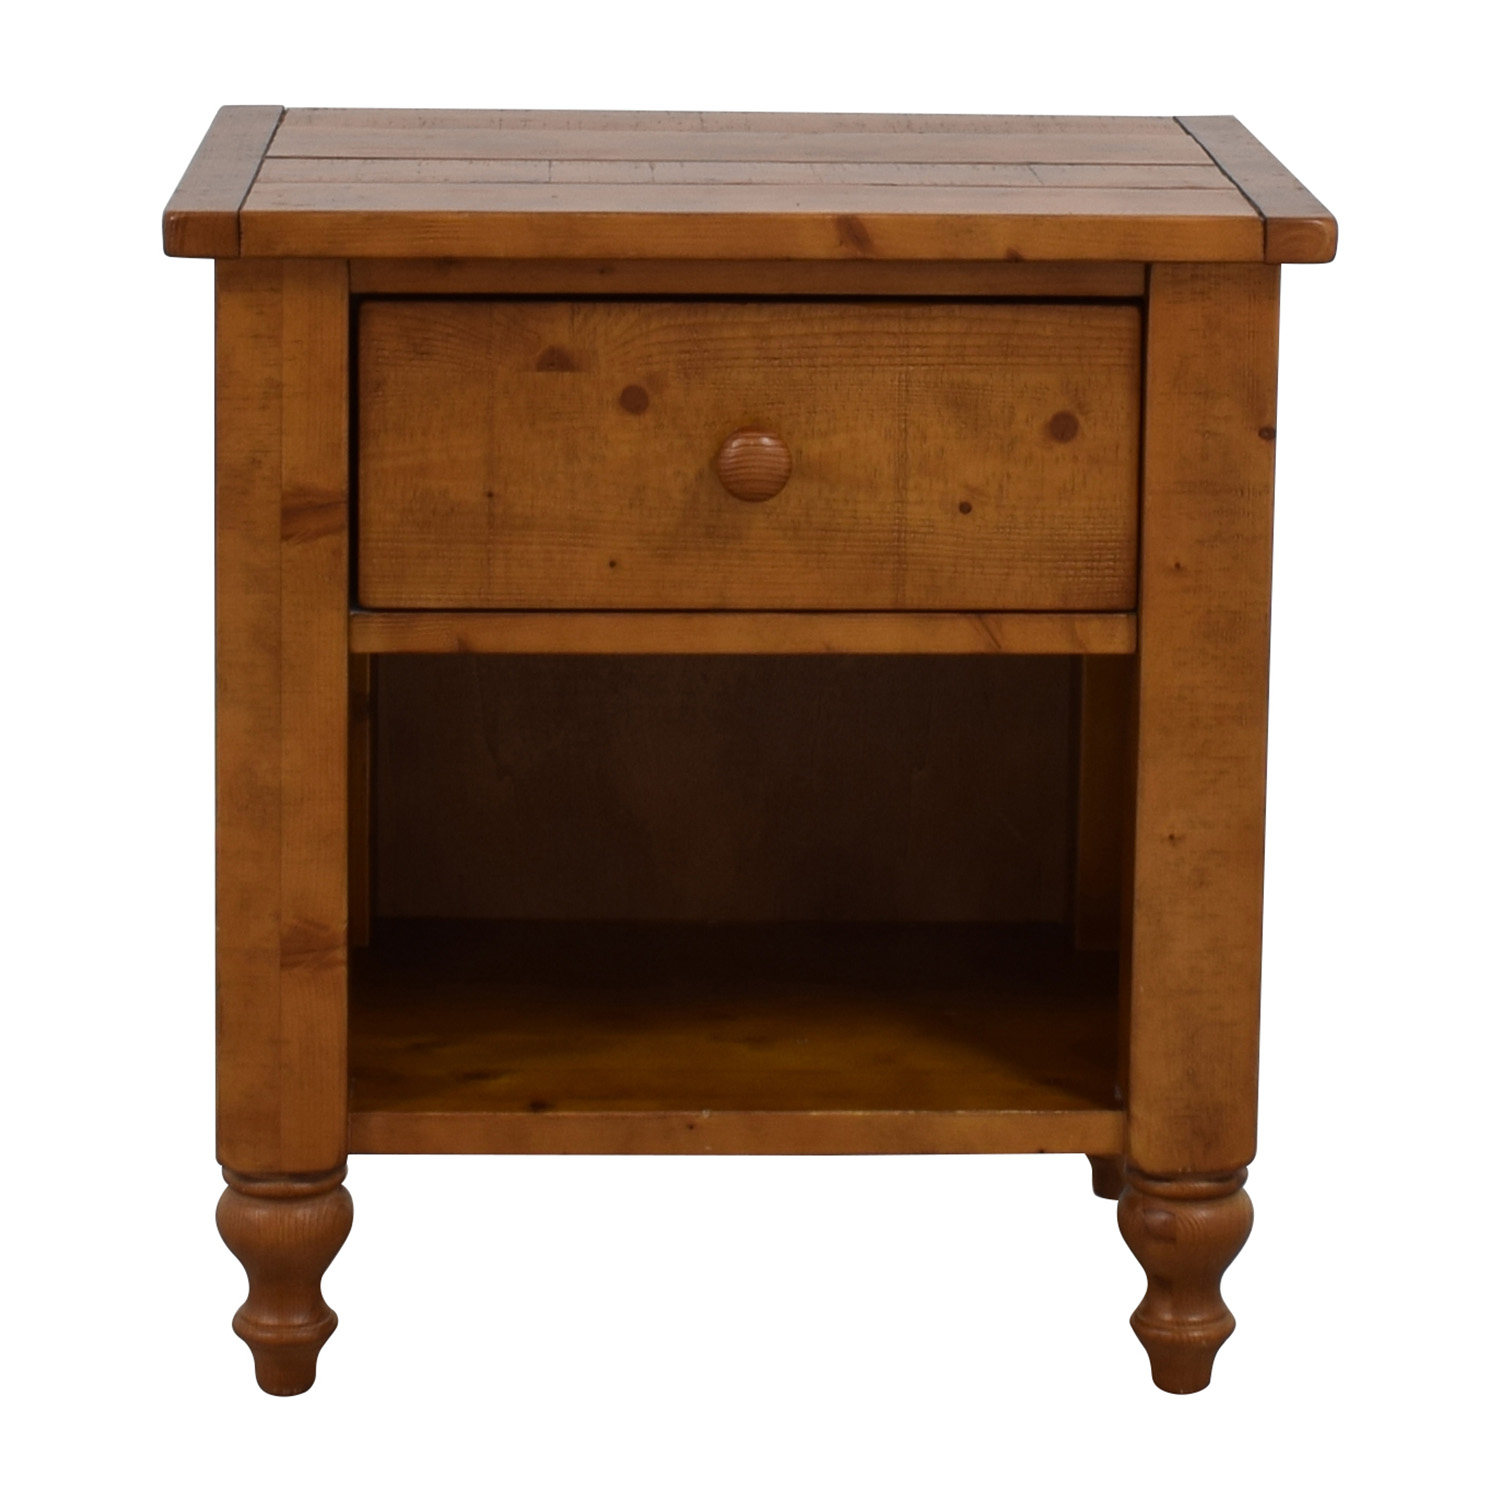 Pottery Barn Pottery Barn Wood Single Drawer Side Table second hand